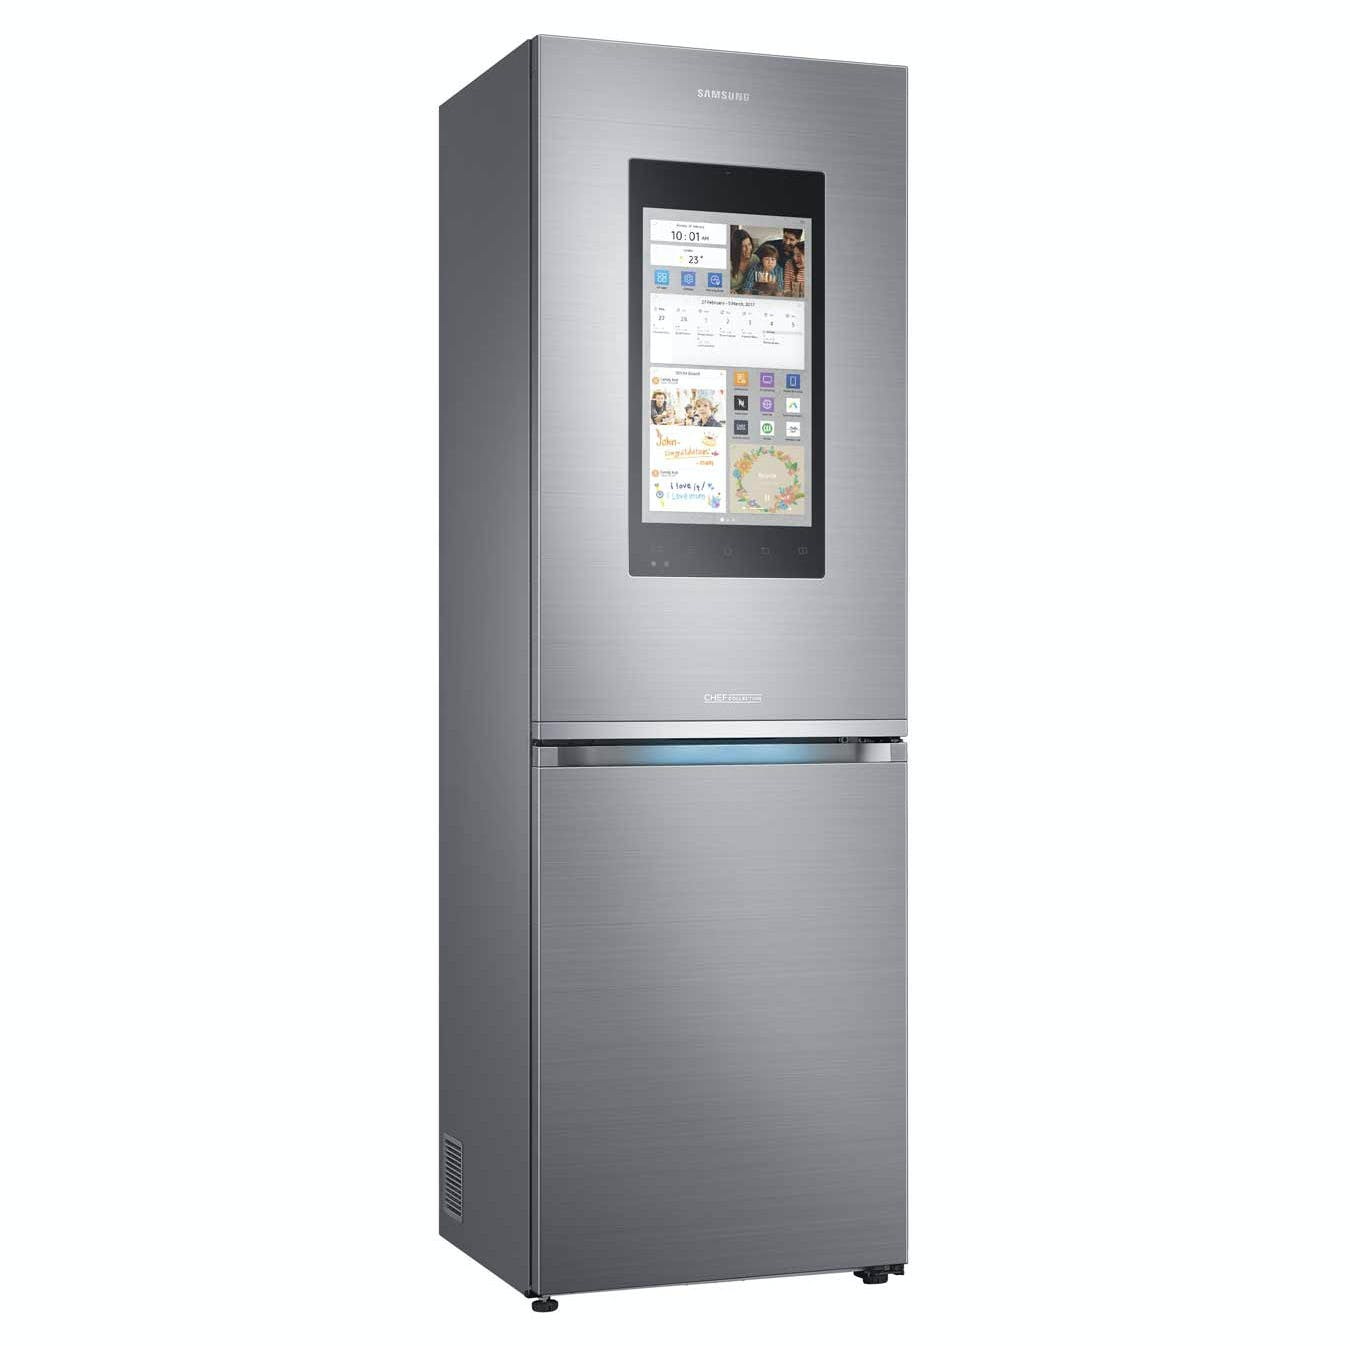 Intelligenter Kühlschrank Samsung Rb38m7998s4 Family Hub Smart Fridge Freezer In St